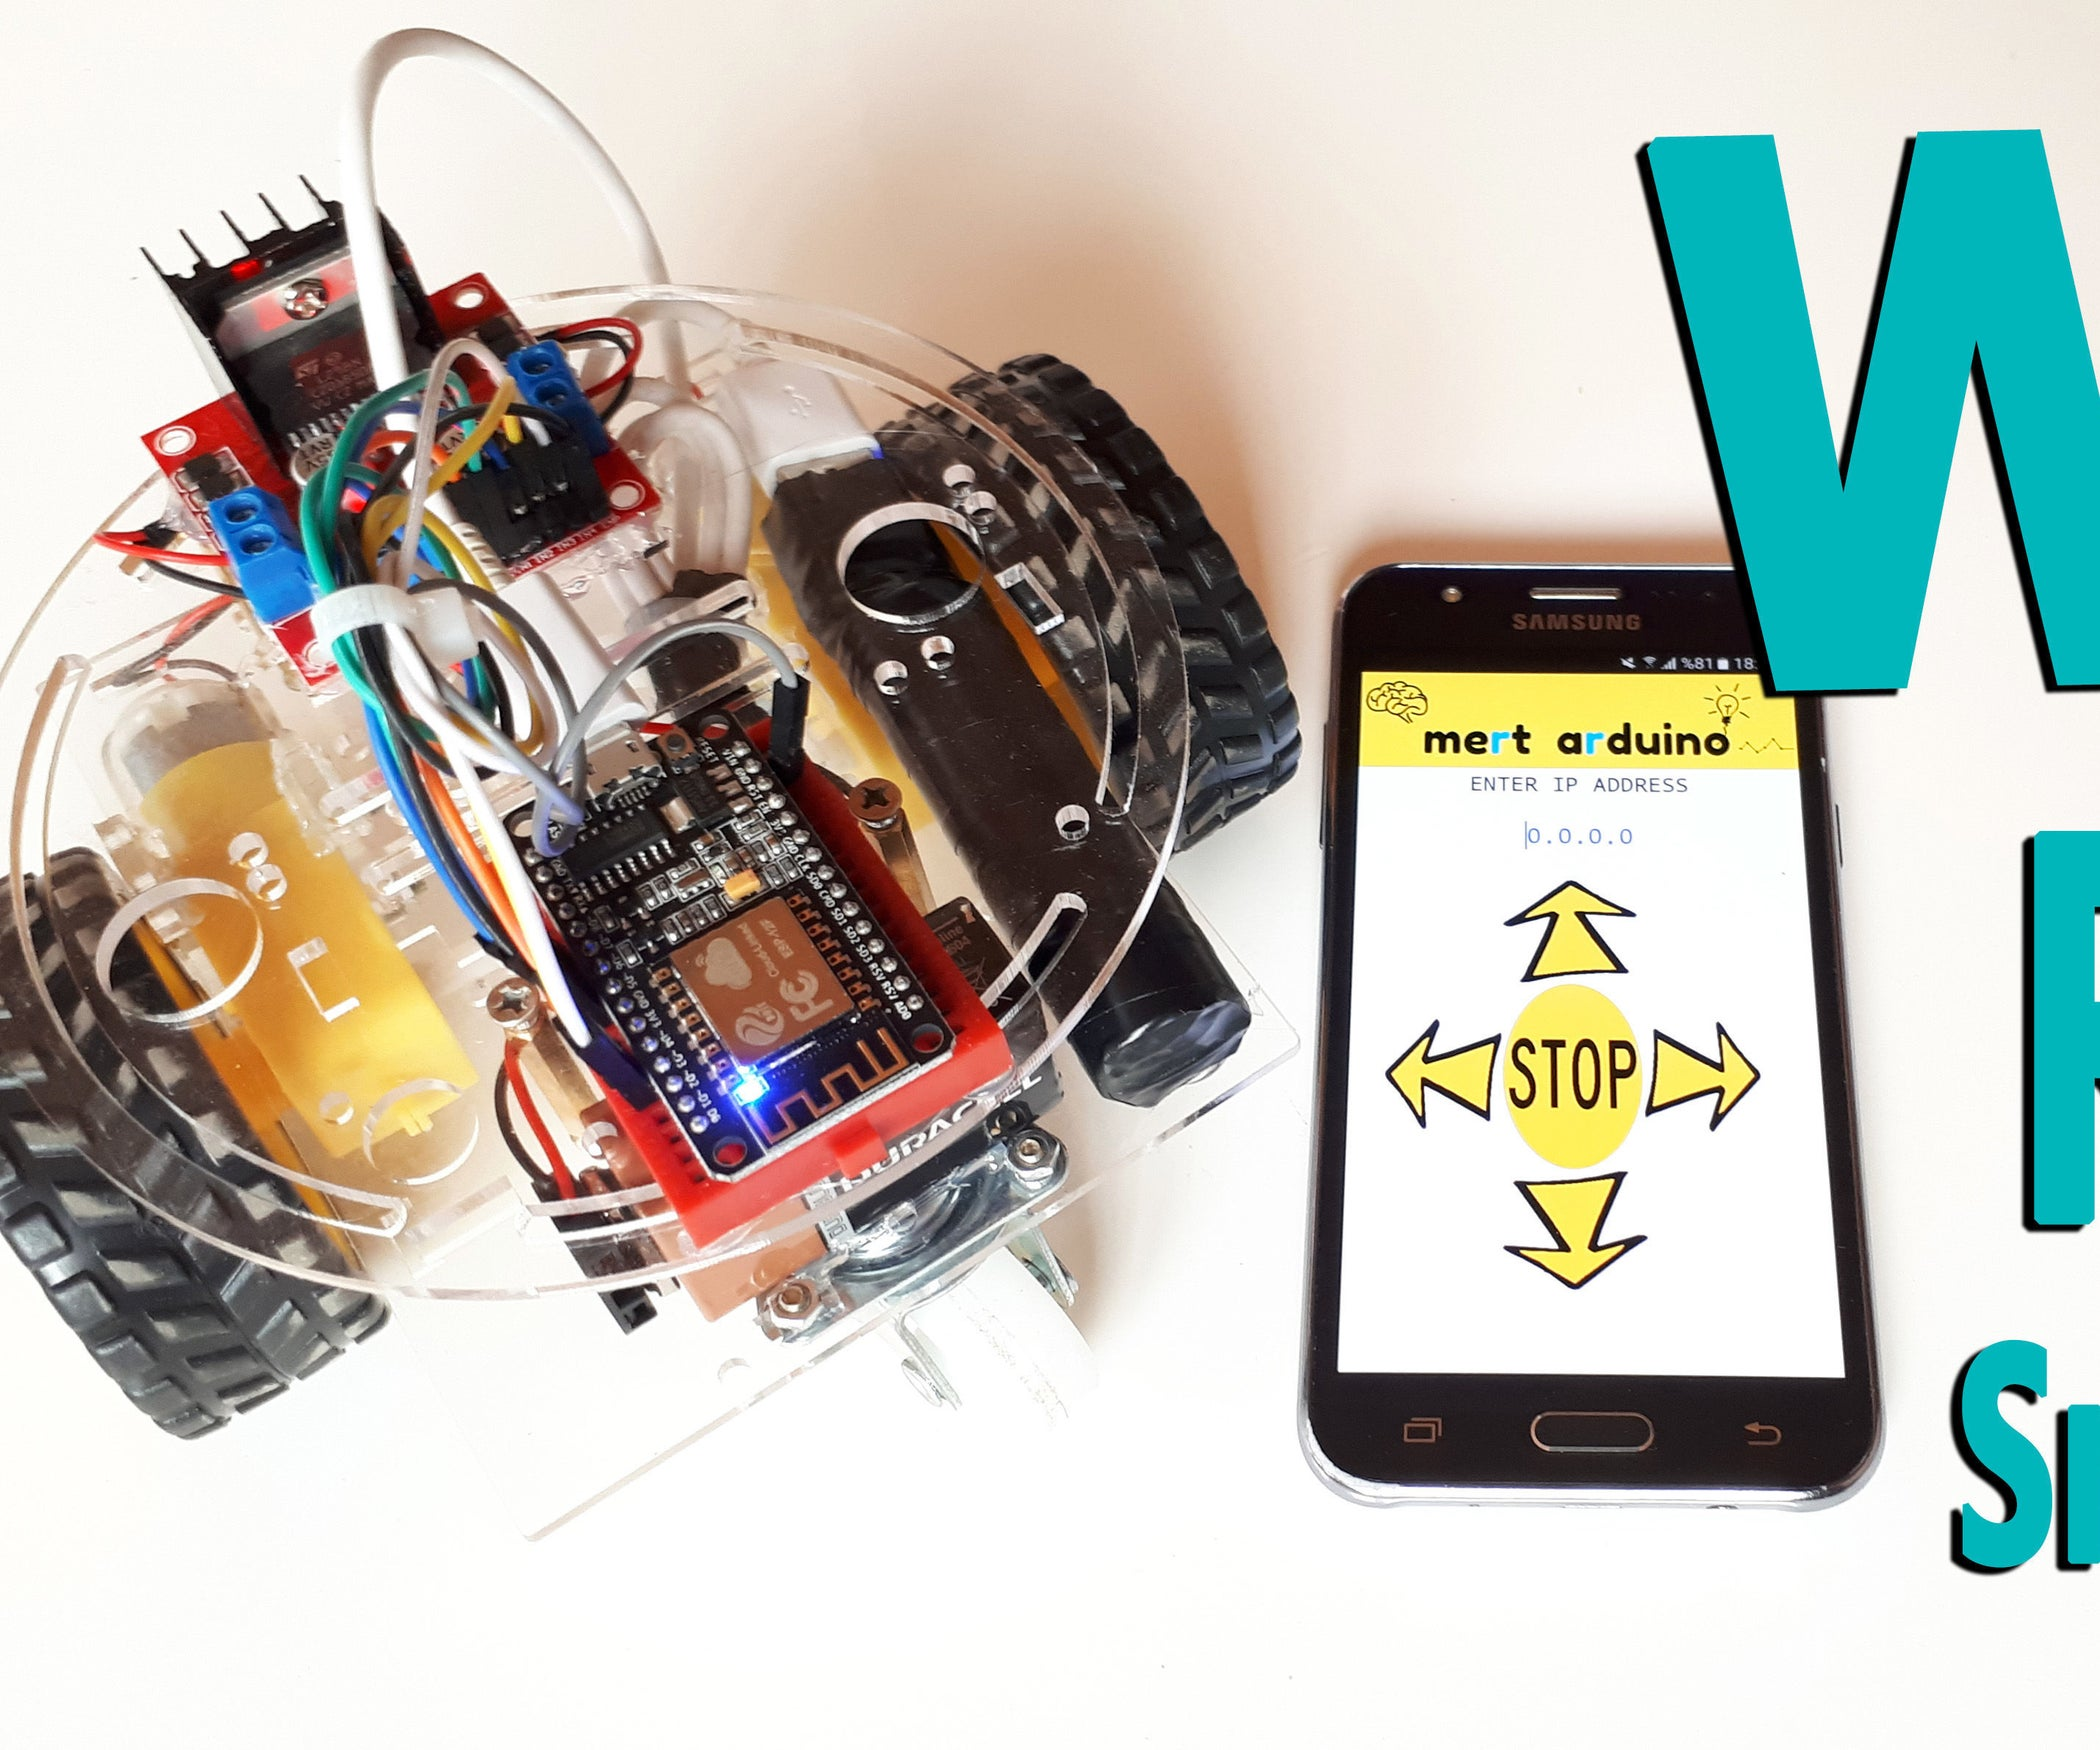 Nodemcu Esp8266 Wifi Robot Car Controlled By Application Bot Metal Detector With Android Remote Control Robotic Kits Iot 3 Steps